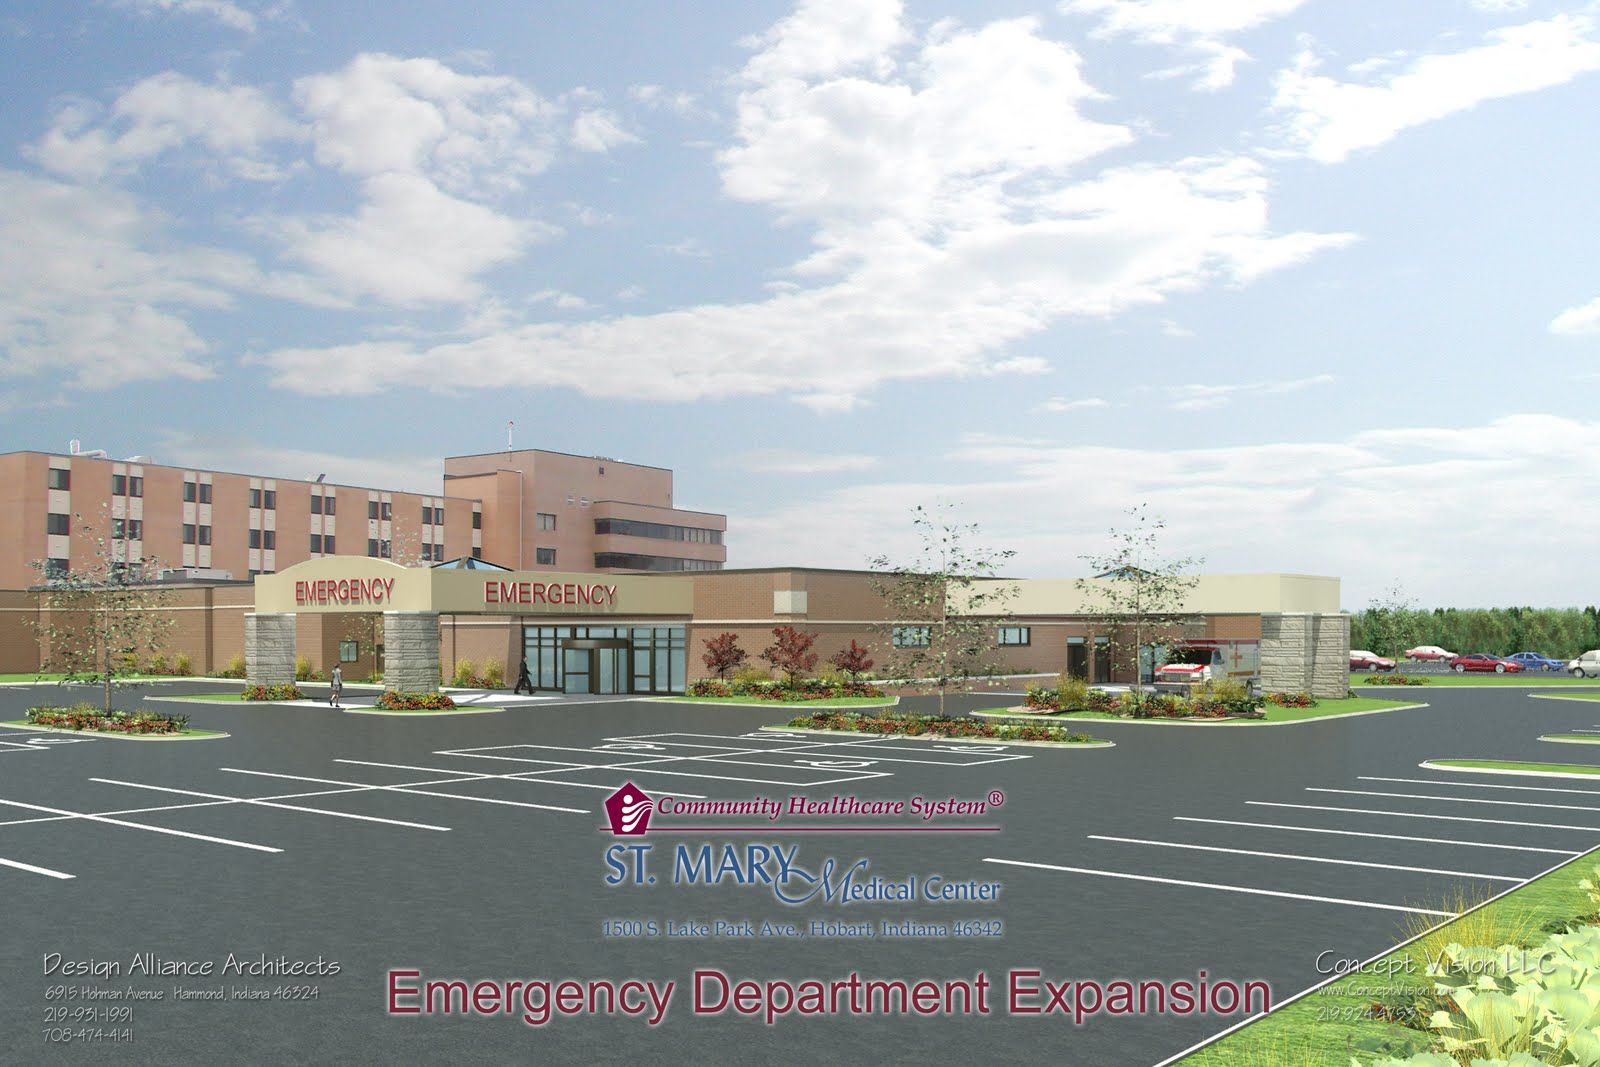 St_ Mary Medical Center Langhorne http://conceptvisionllc.blogspot.com/2010/08/st-mary-medical-center-design-alliance.html